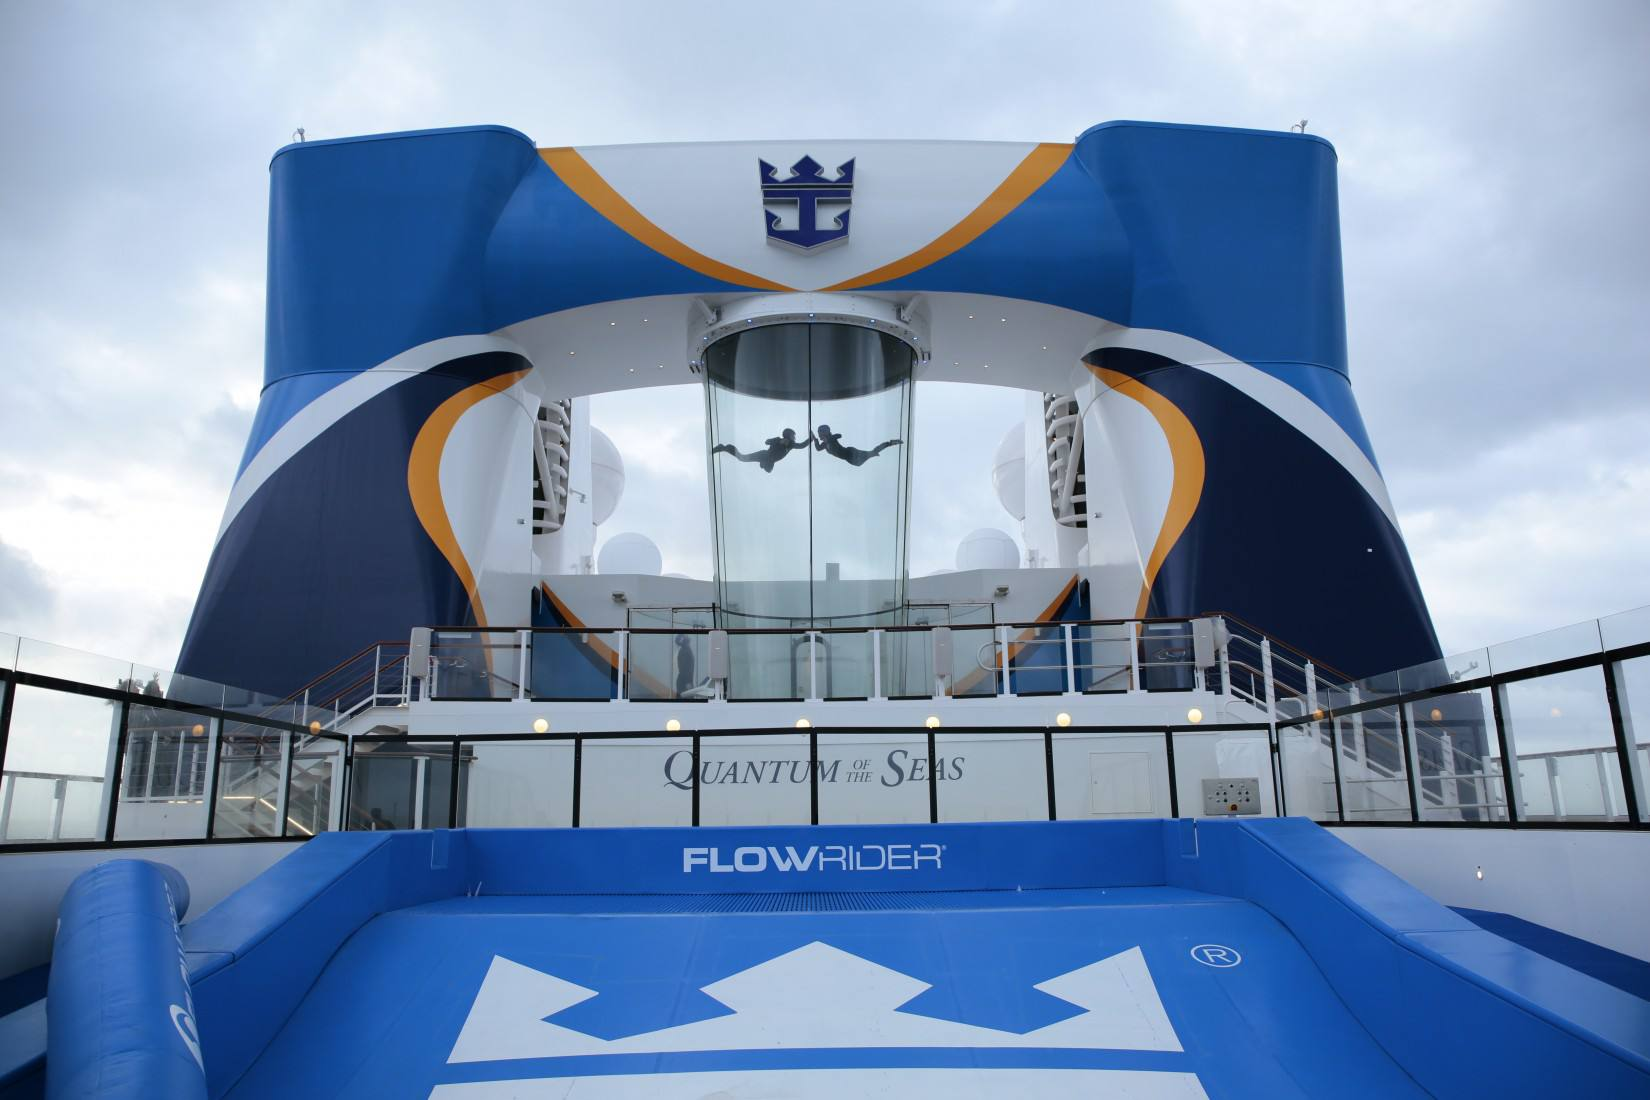 RipCord and FlowRider on the Quantum of the Seas